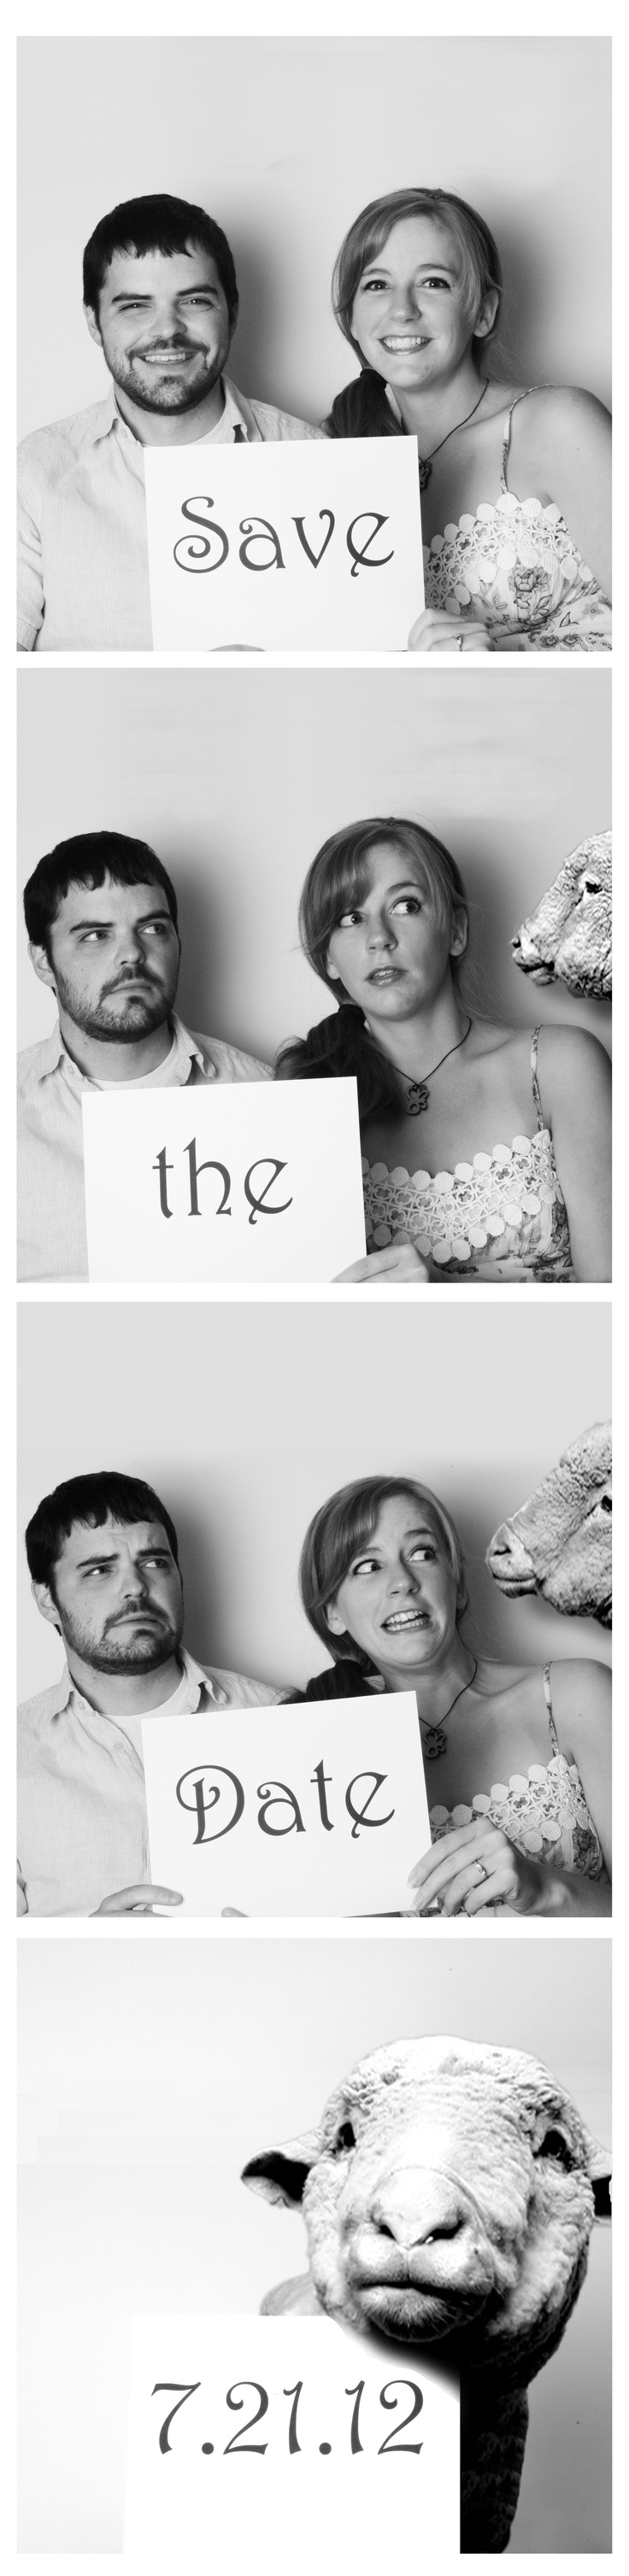 Our Arrested Development inspired save-the-date